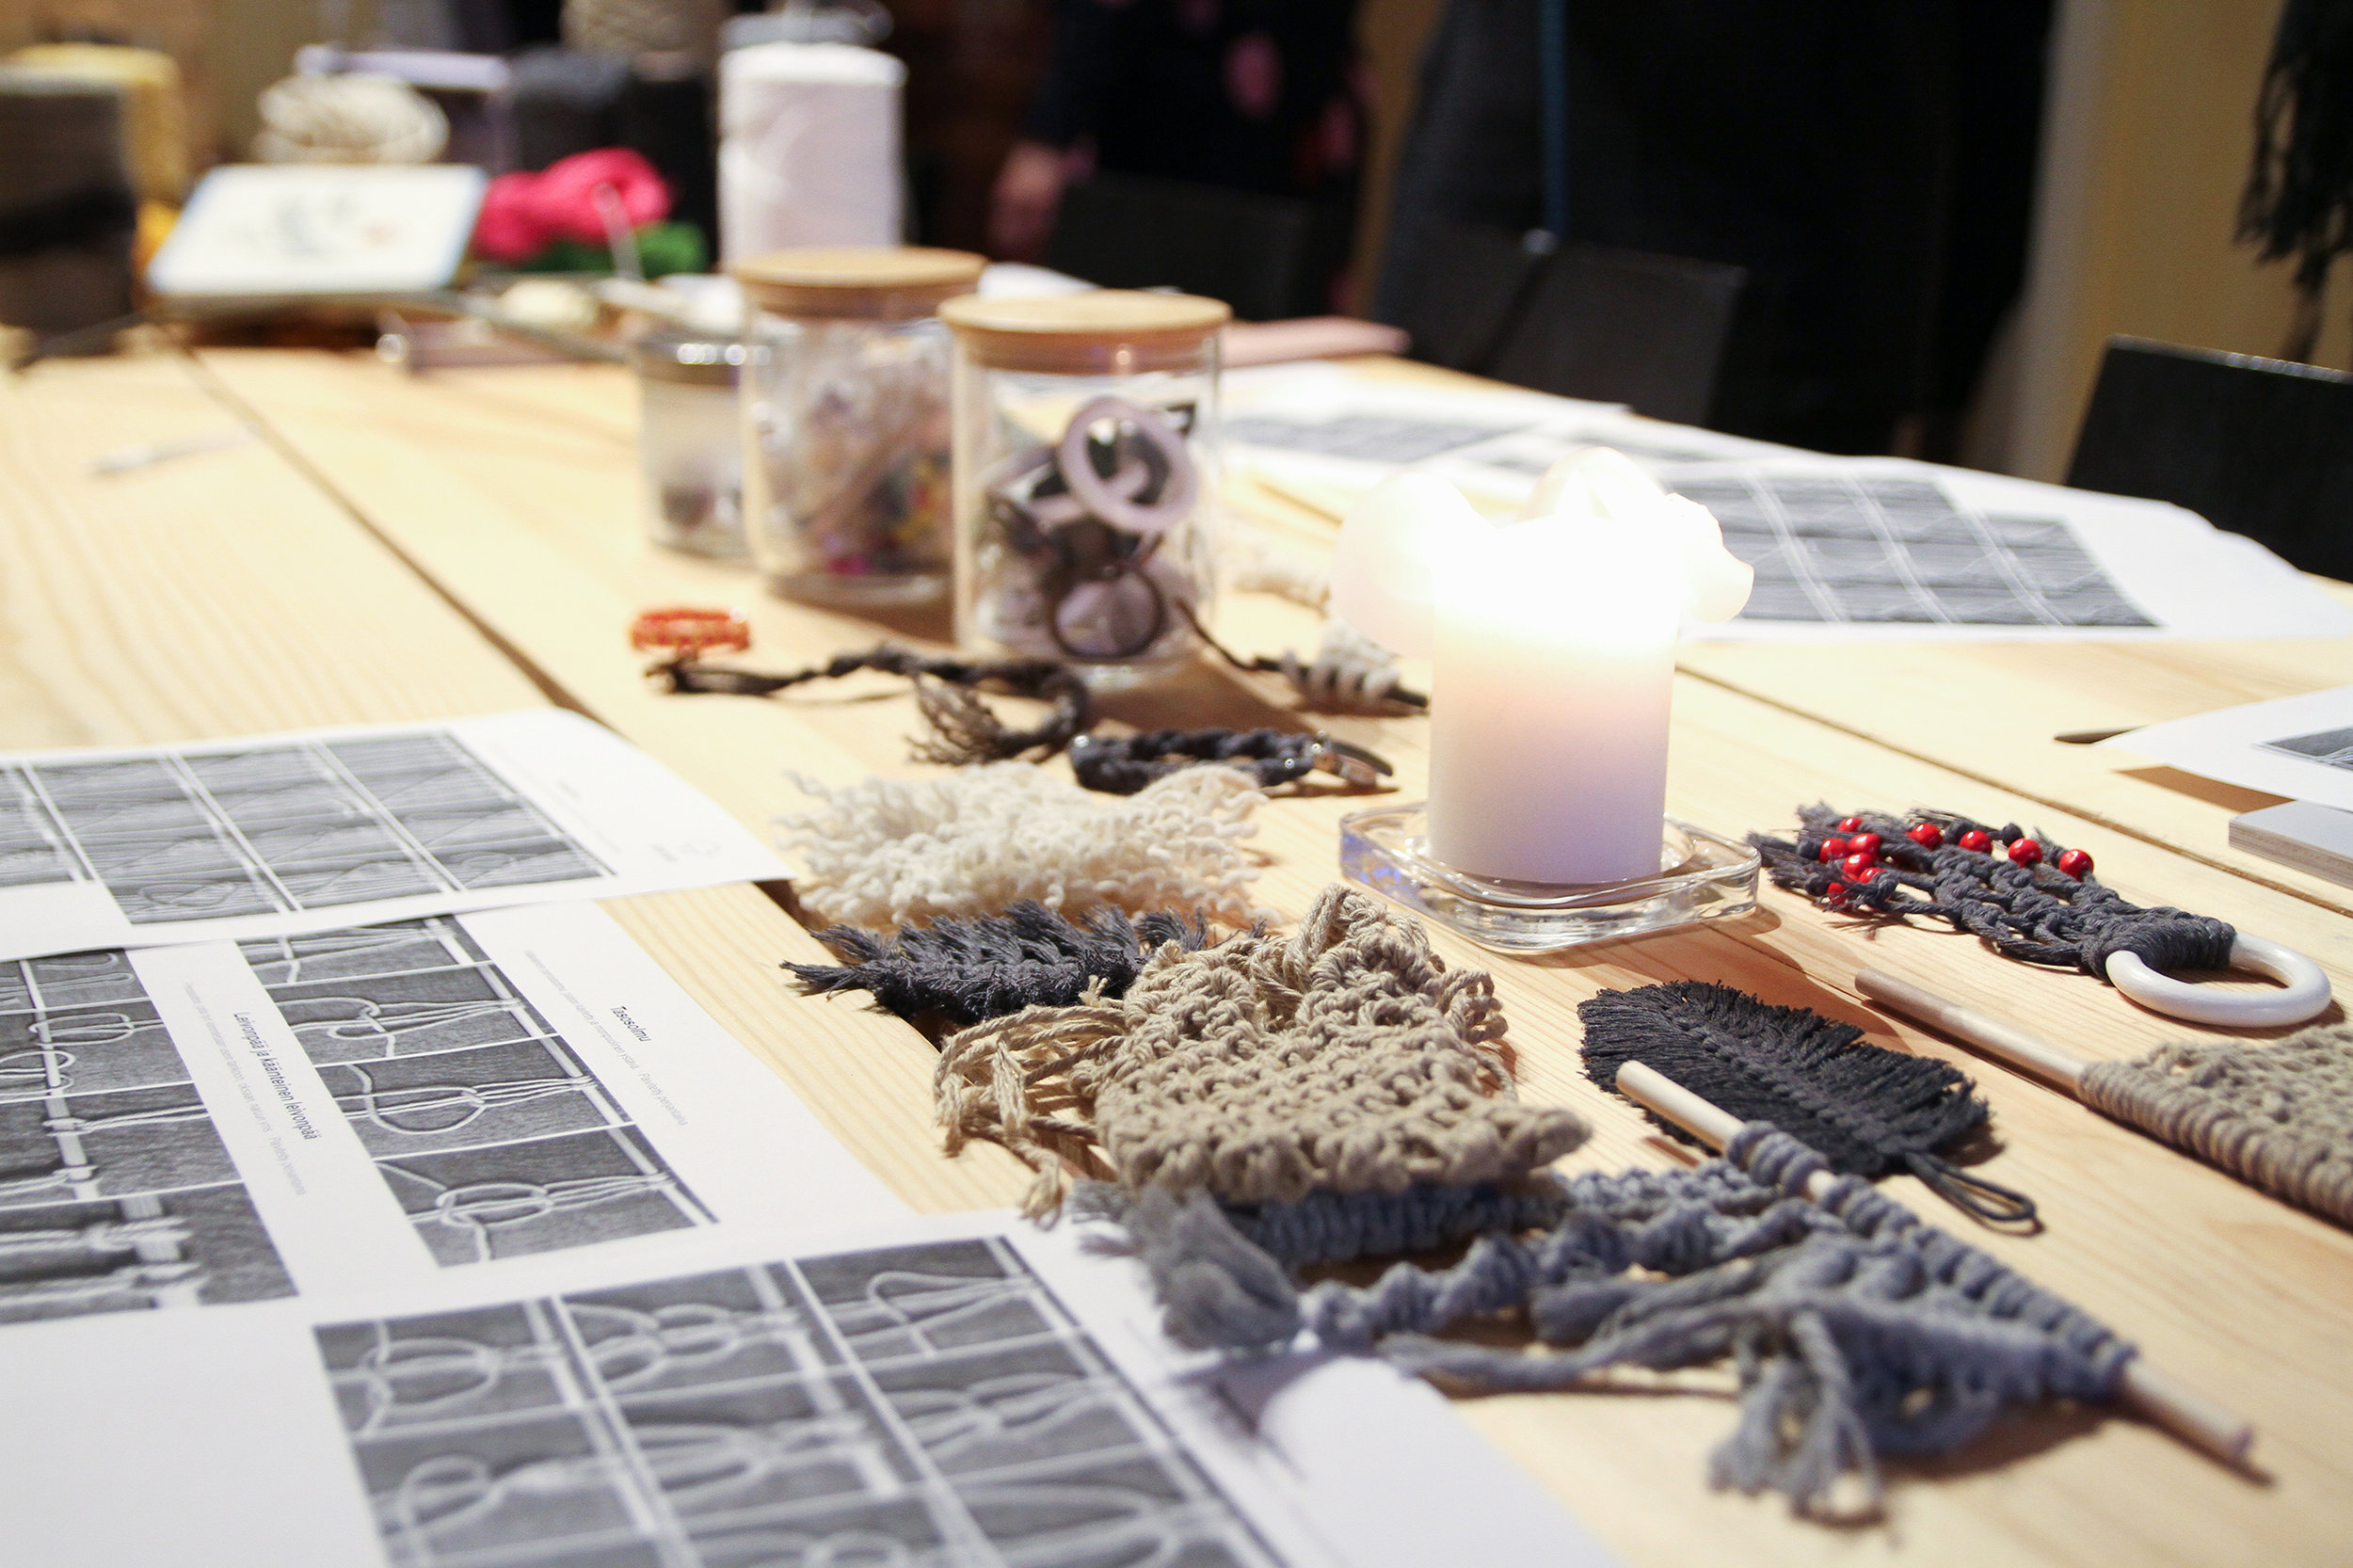 Samples of small macrame projects. Photo: Anni Laitinen.